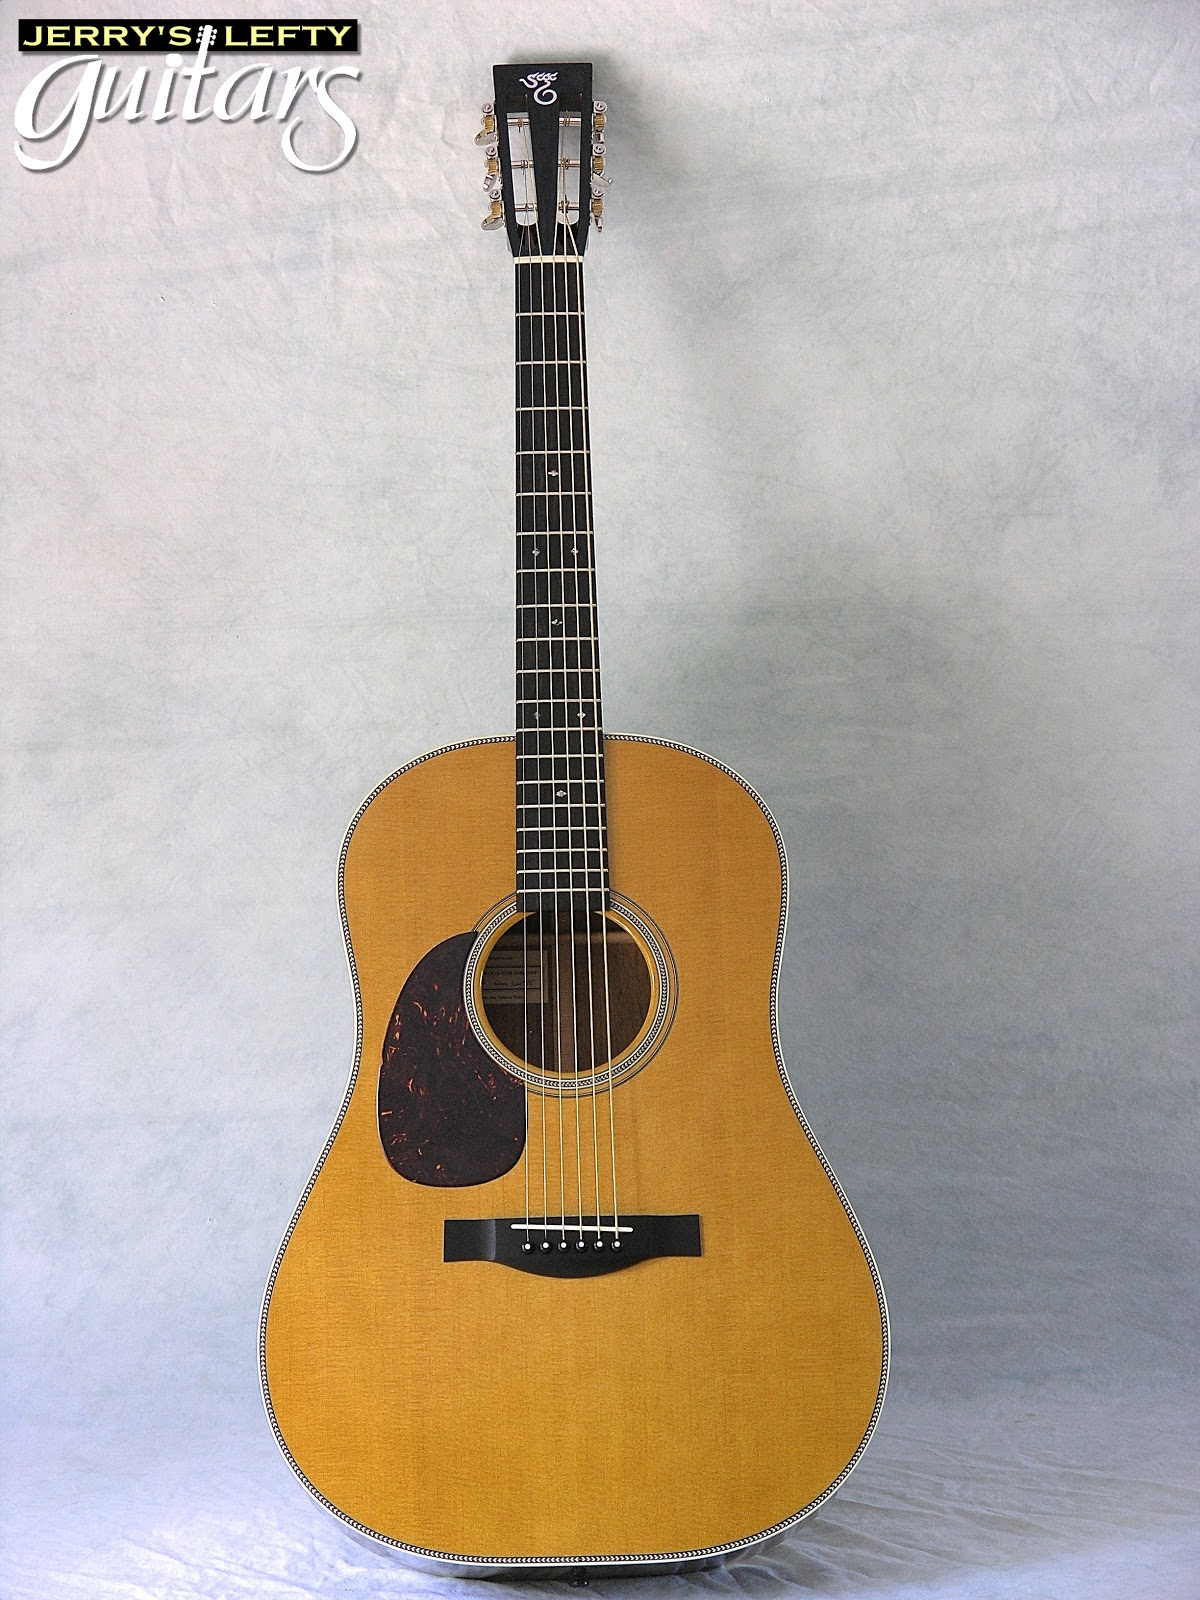 dating santa cruz guitars Santa cruz vintage southerner inspired by brazil, and also a chicago mill dating the ag interview ag.